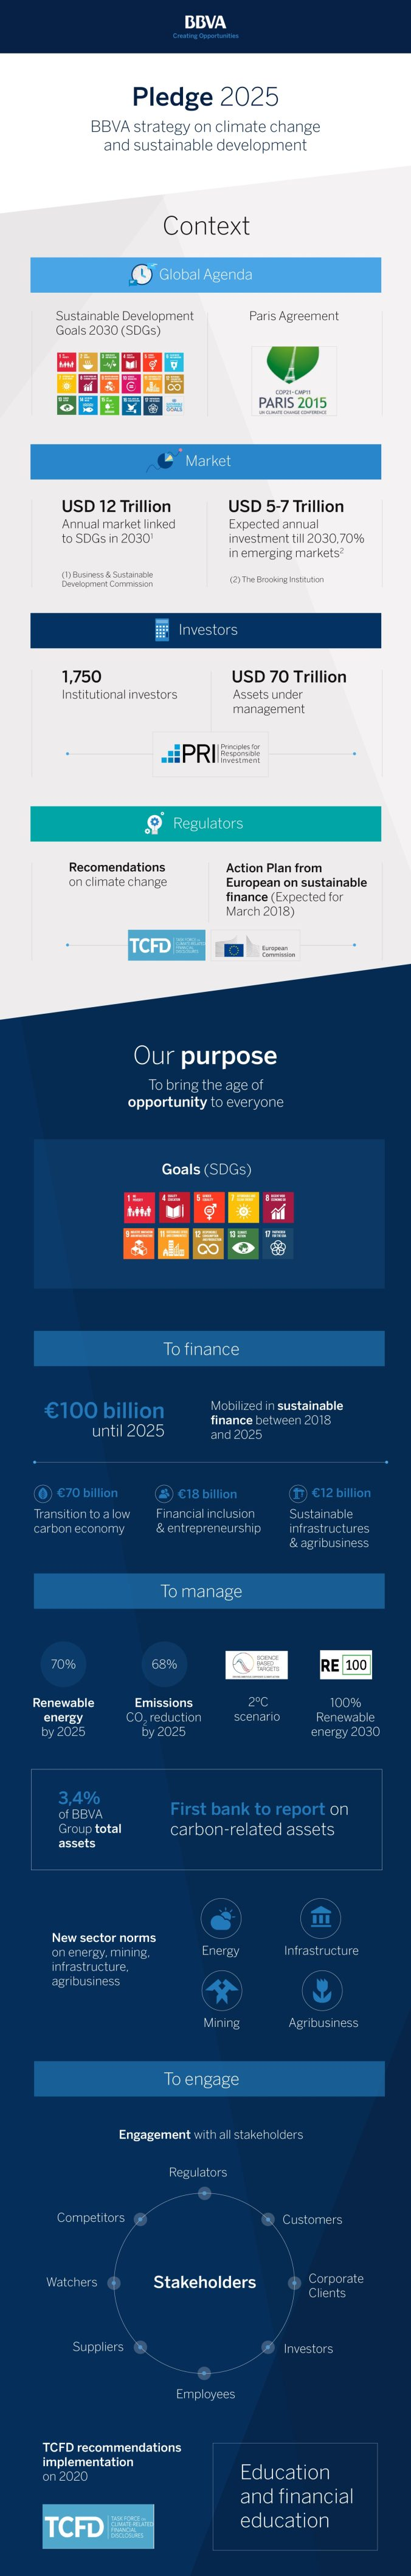 2019-07-26 infographics-pledge-2025-bbva-2-1920x12047